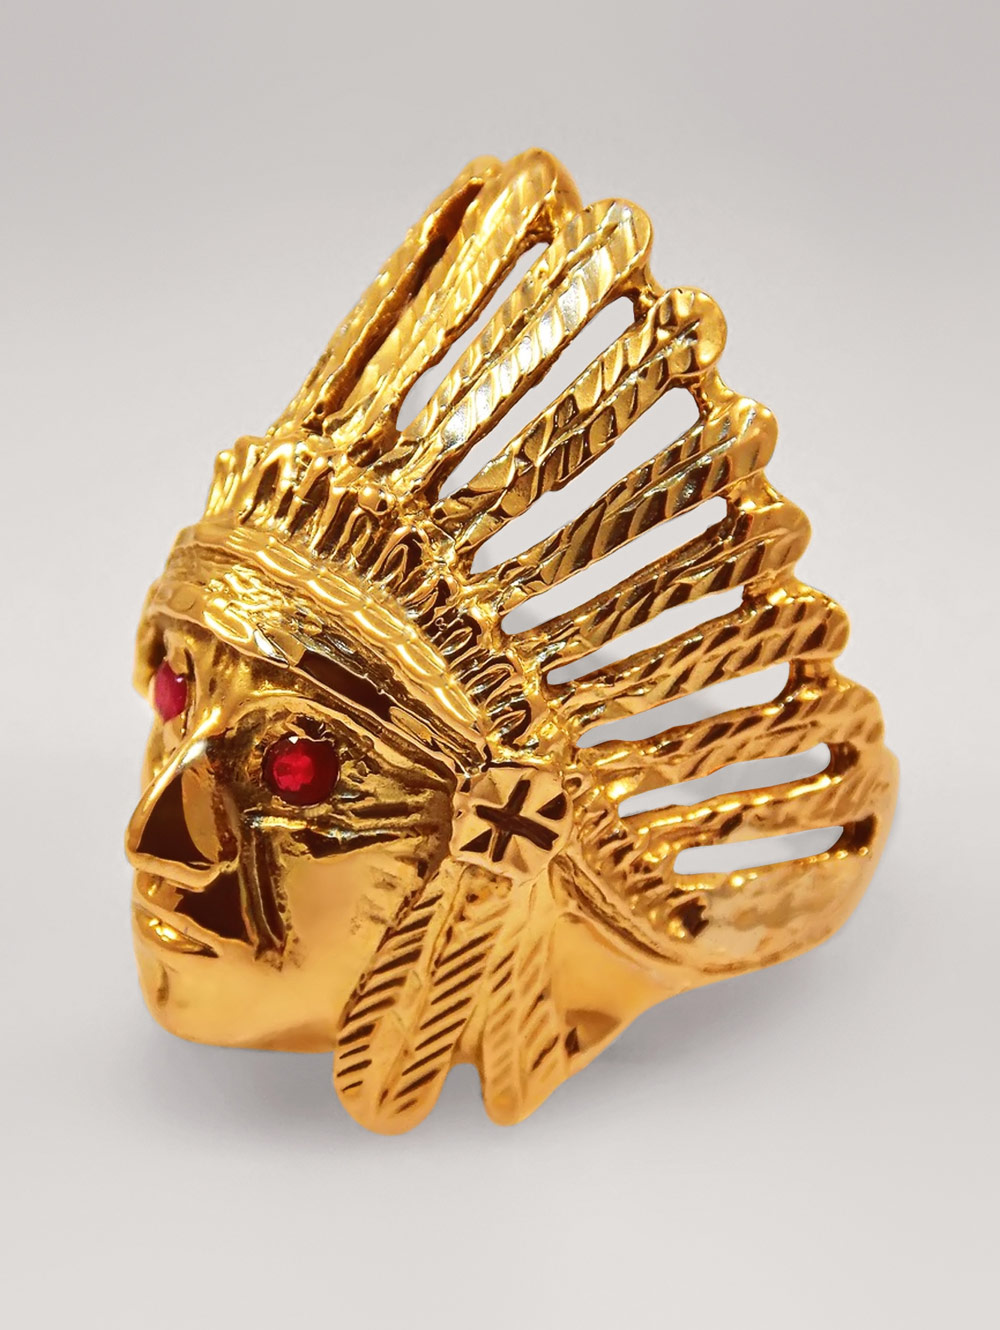 Jewelry product photo fixing service and restoration